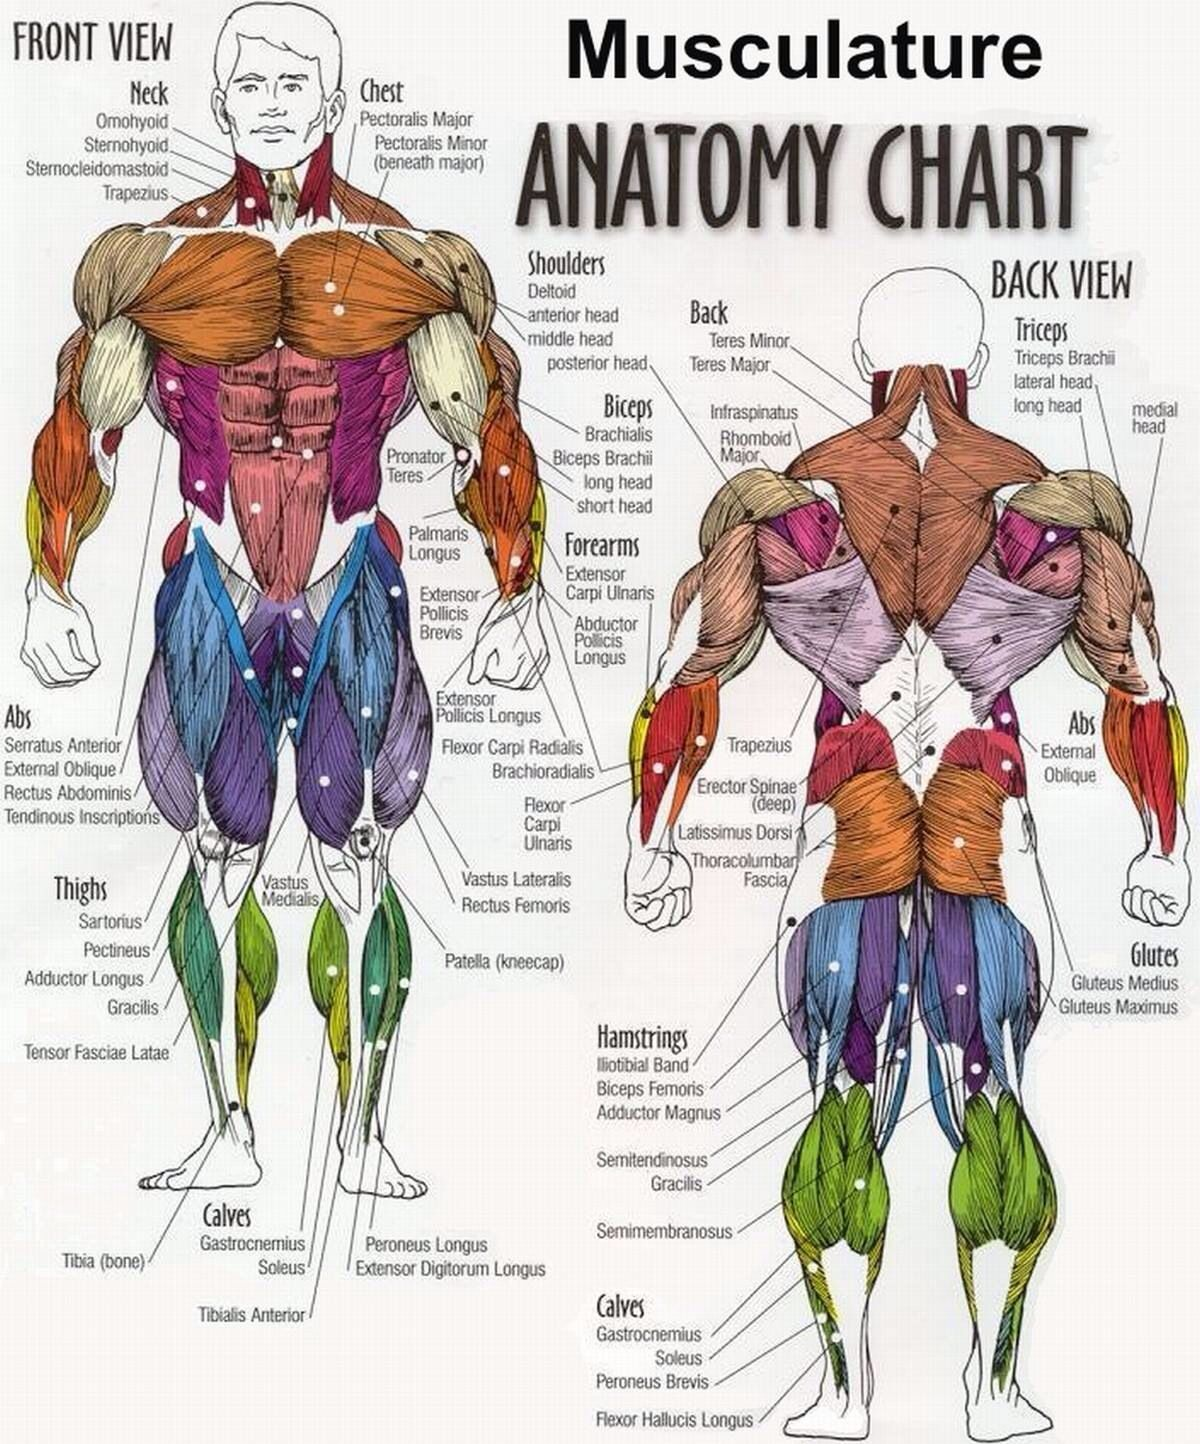 hight resolution of body building anatomy chart from gym posters